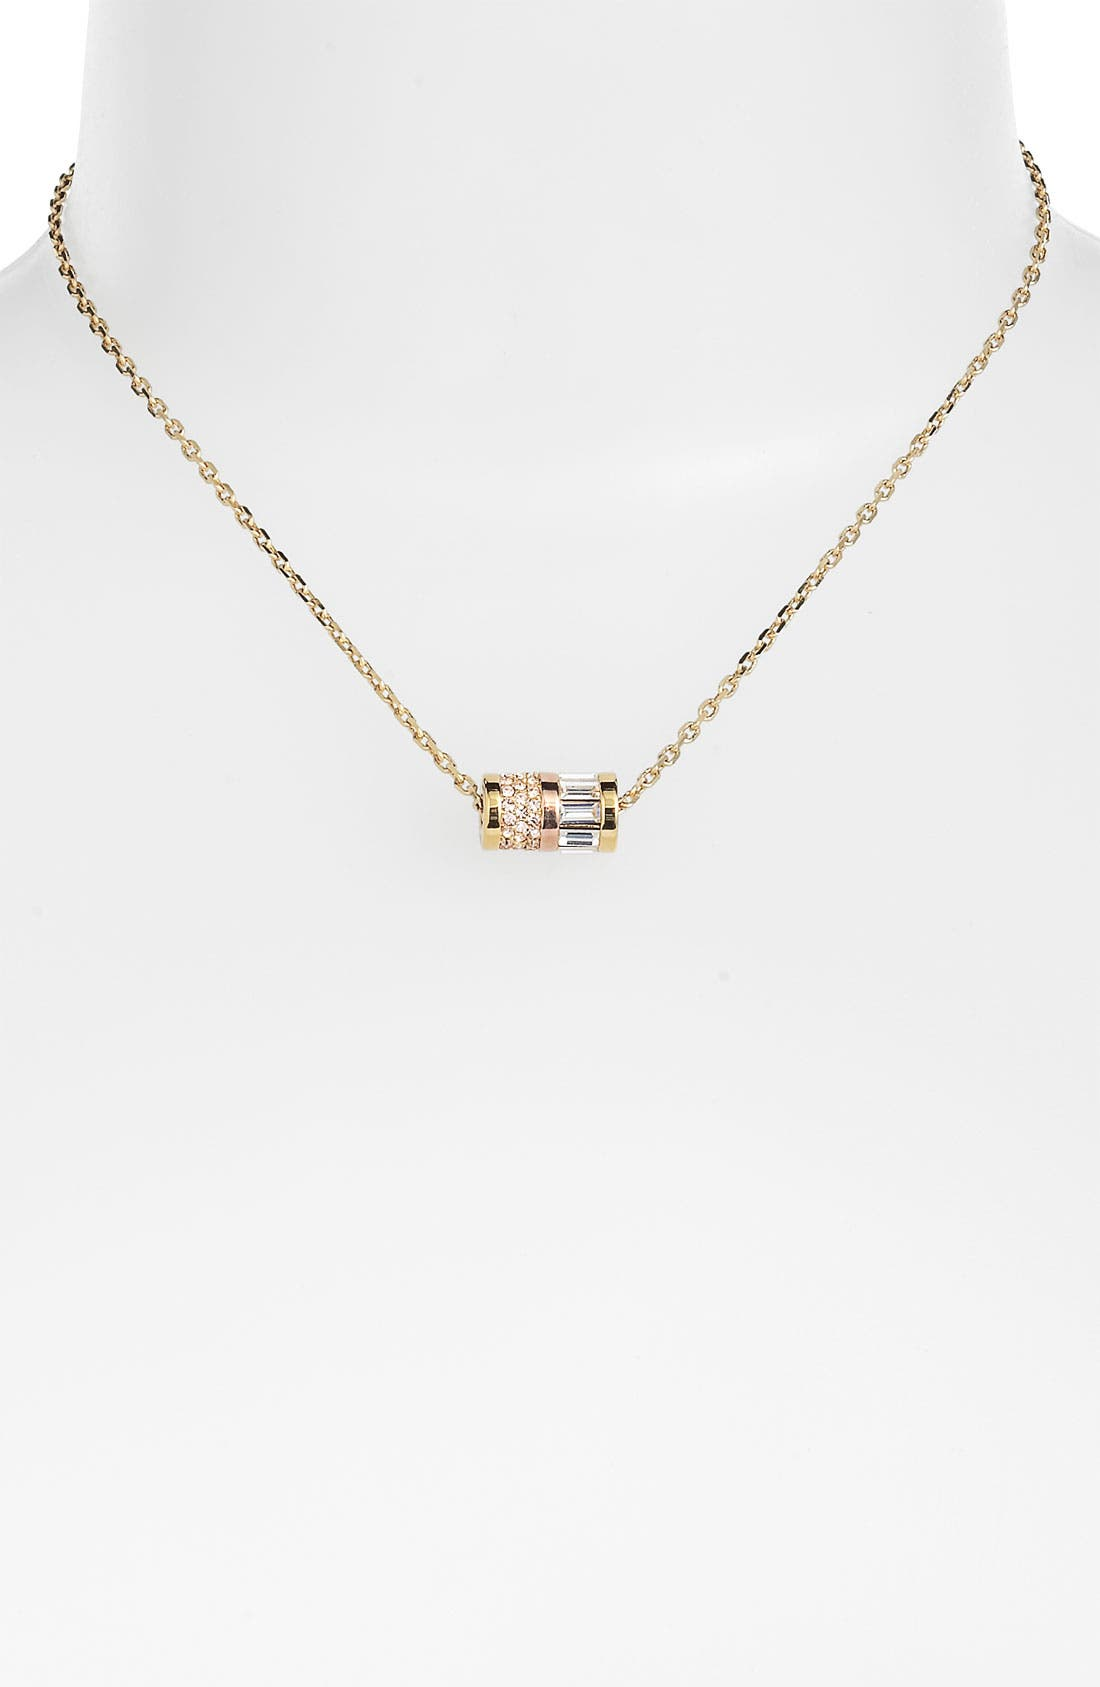 Main Image - Michael Kors 'Brilliance' Pendant Necklace